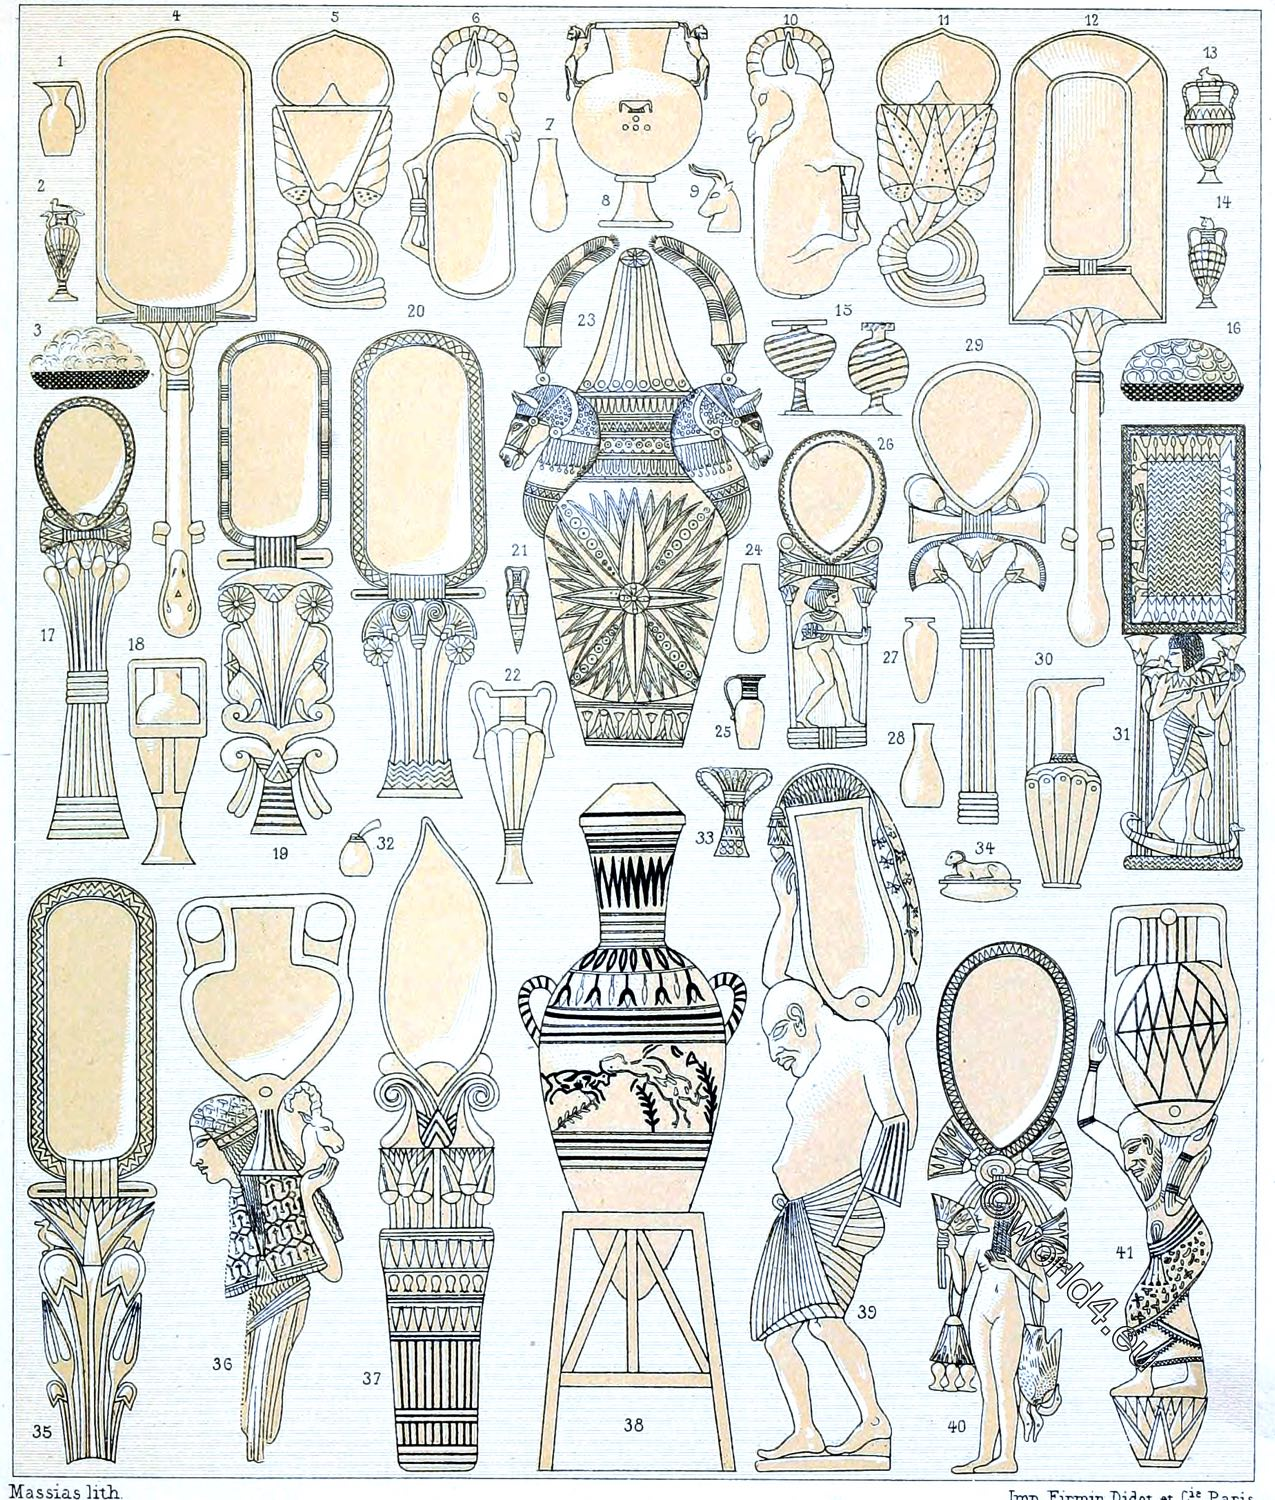 Egyptian, domestic, appliances, amphora, vases, vessels, ointments, perfumes